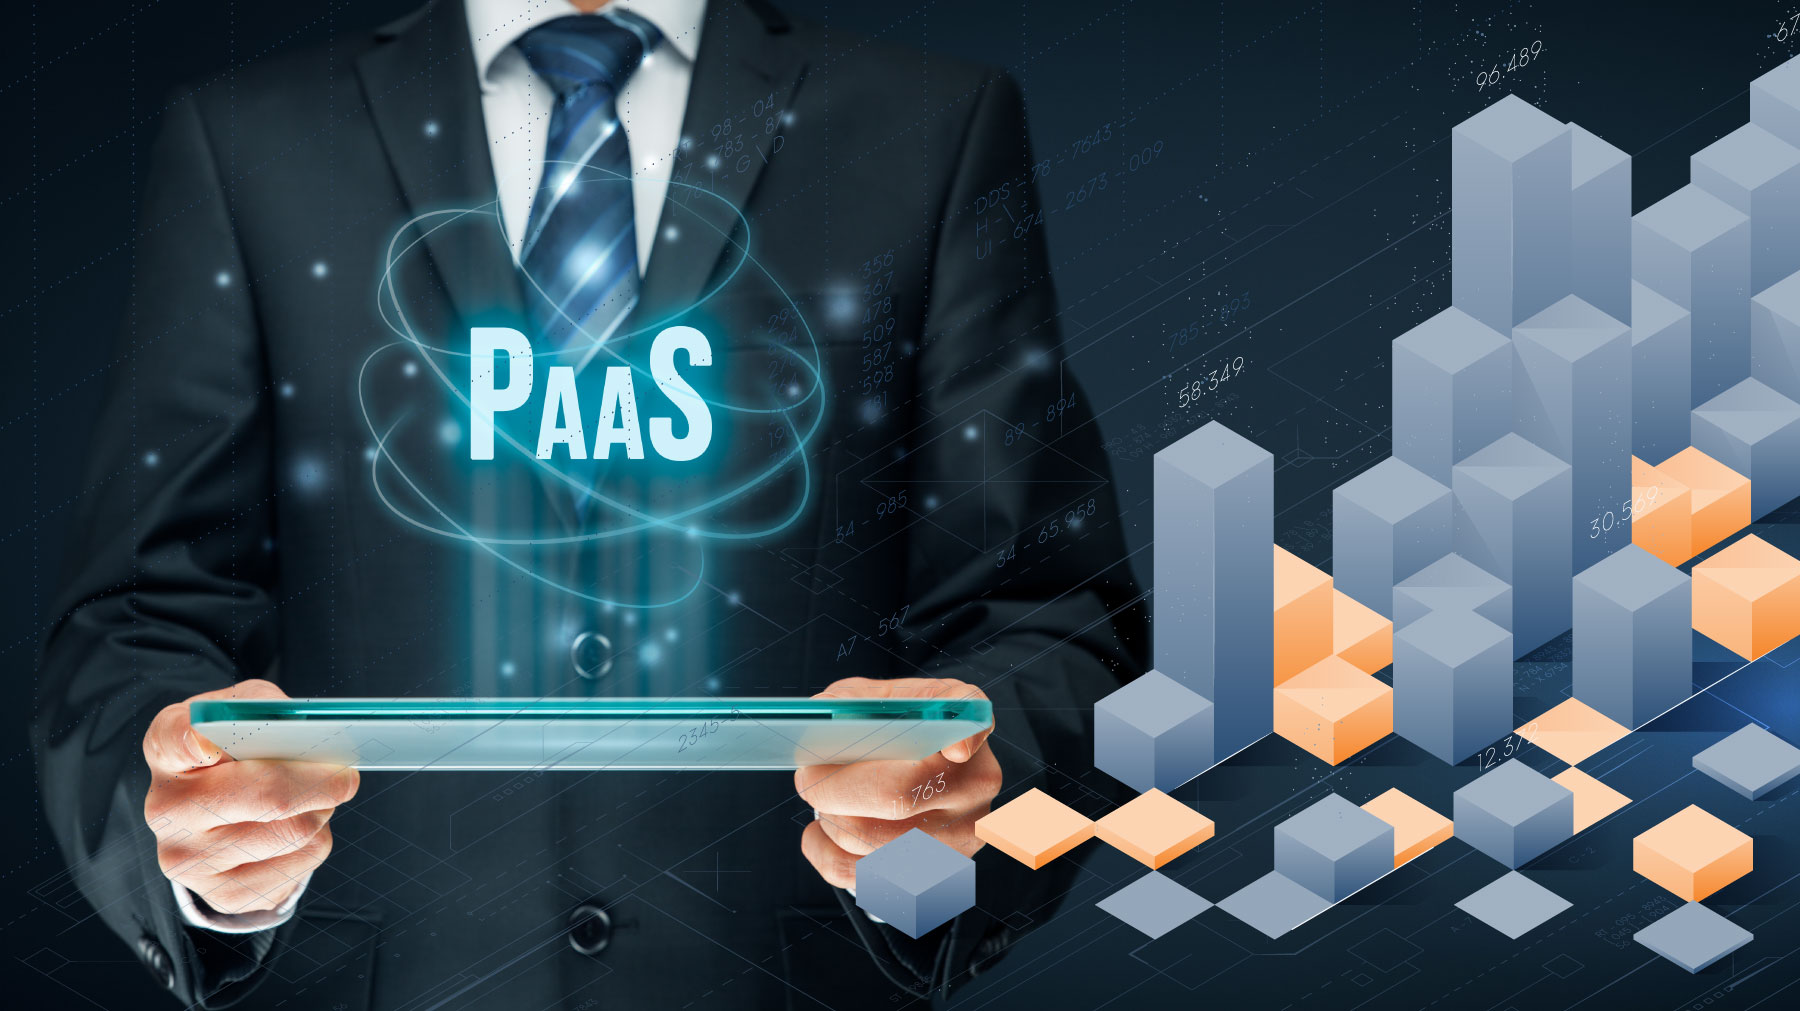 Sophisticated Services Are Driving the Evolution of PaaS